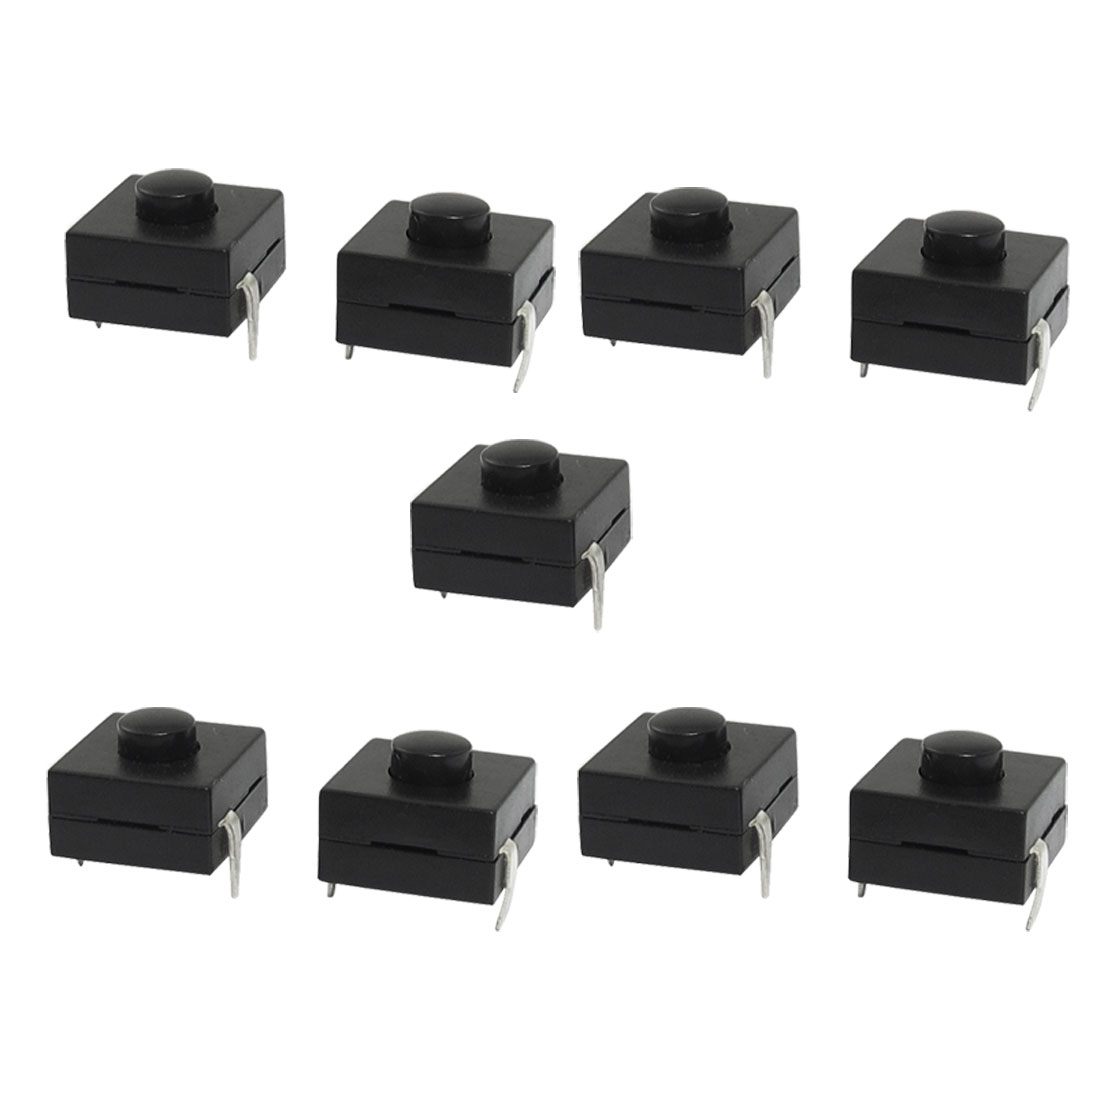 9 Pcs Vertical Square Push Button Switch Black for Electric Torch